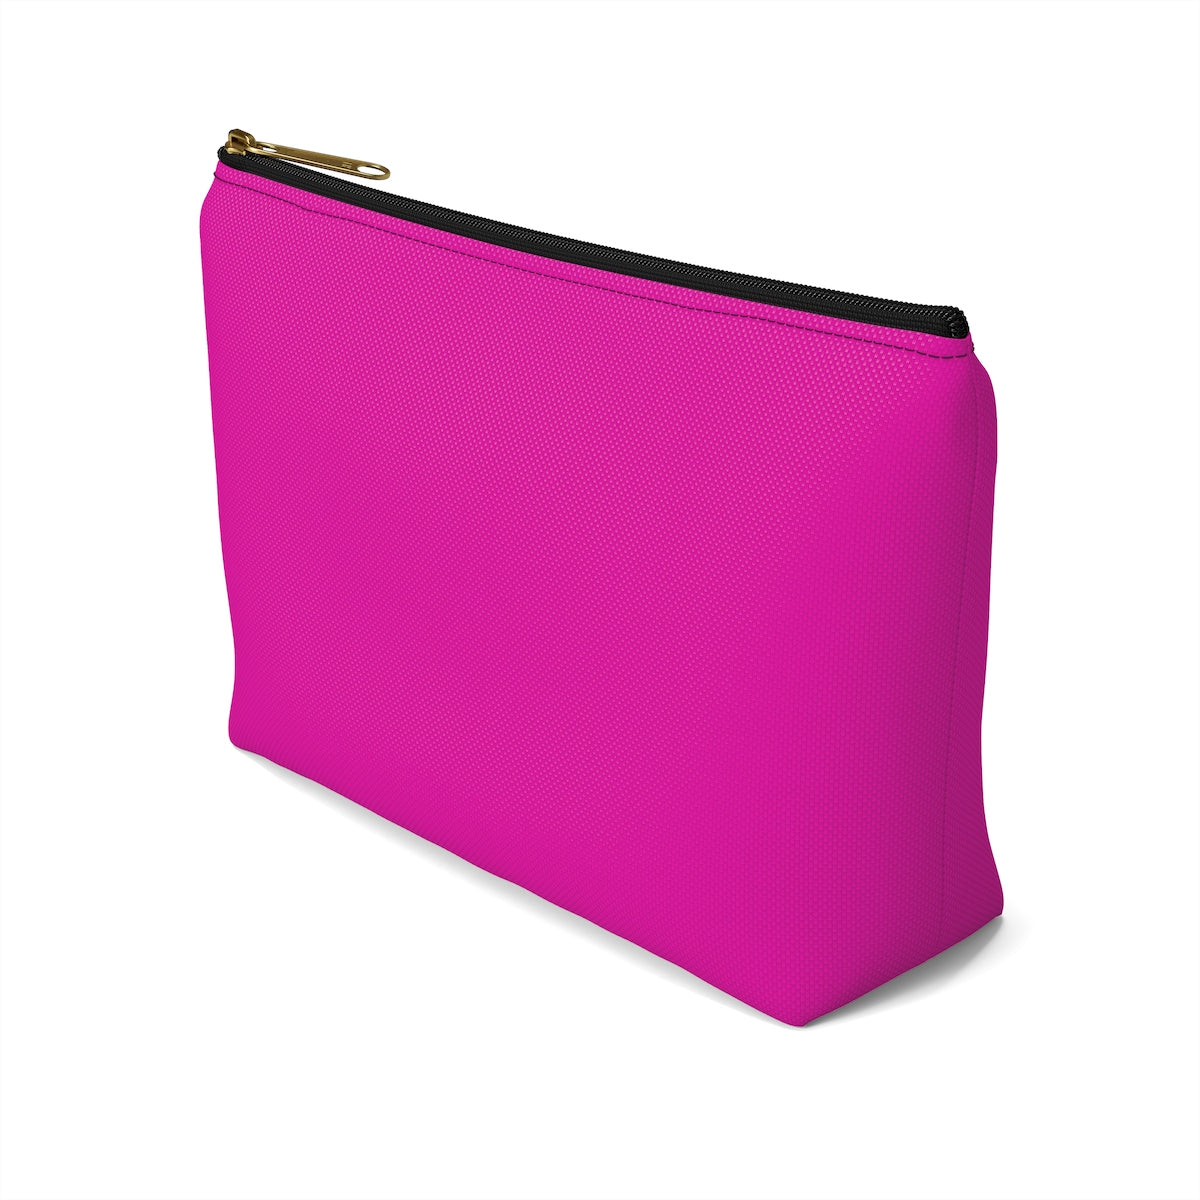 God's Square Mile Accessory Bag: Pink - GoGannon Designs